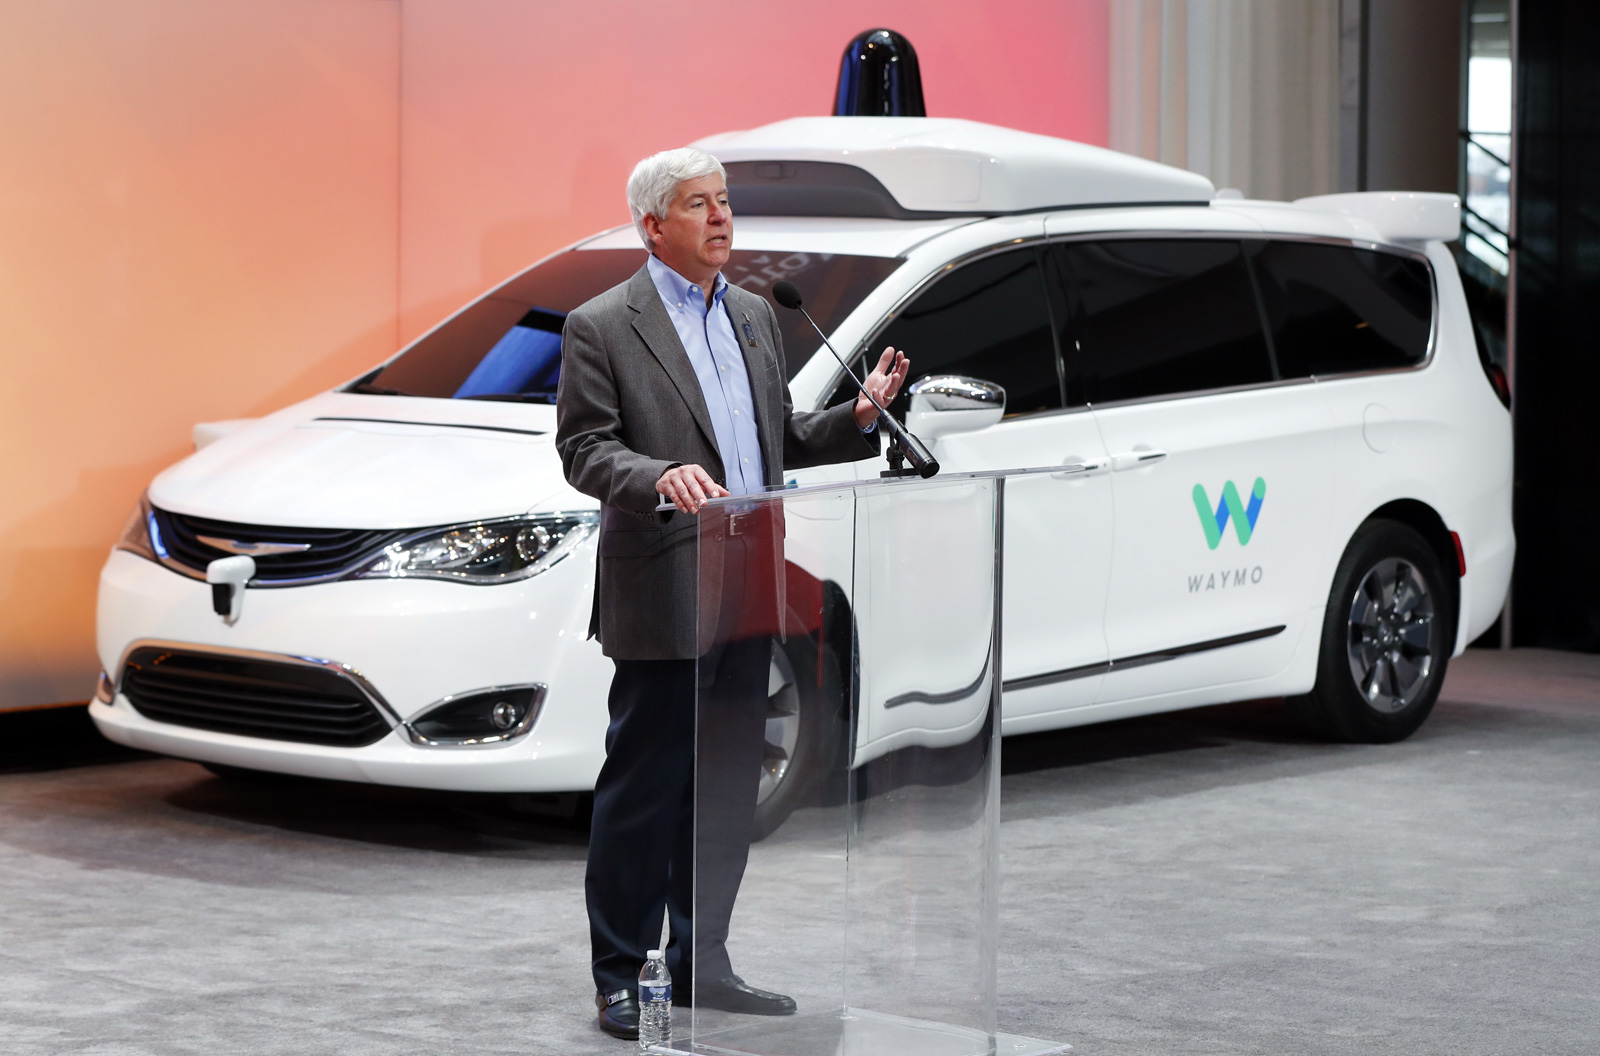 Google Self-Driving Cars Waymo